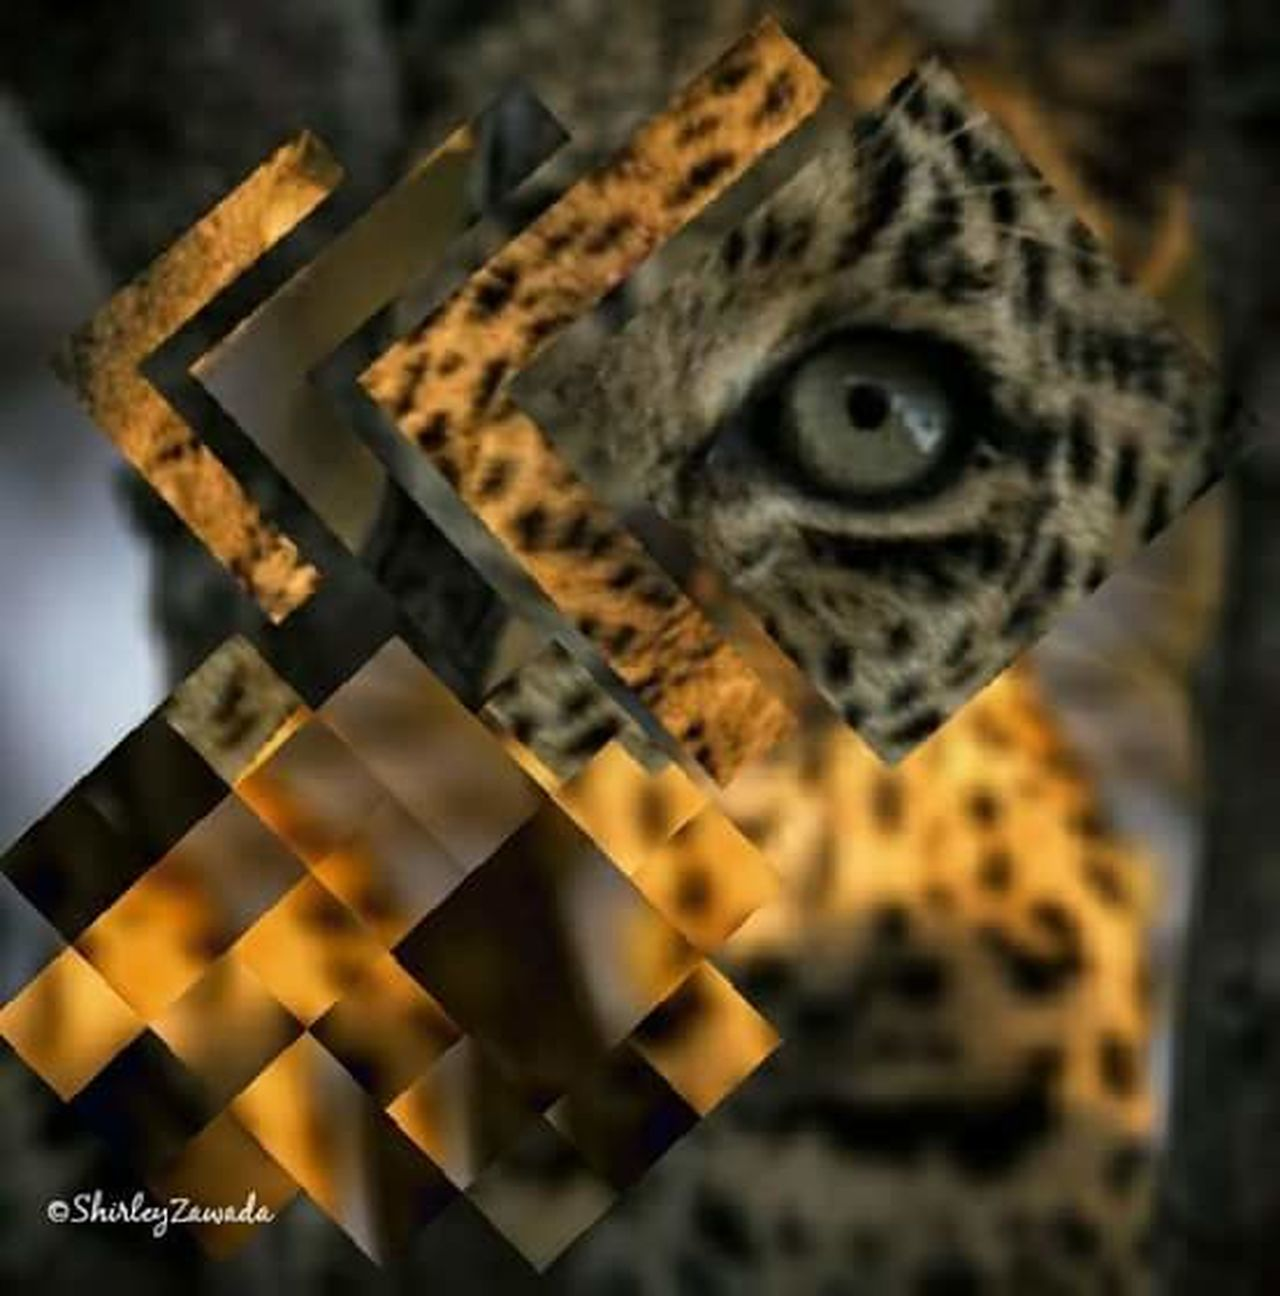 No People Close-up Animal Themes Surreal Tiger Eye IMography Mobileartistry Digital Art